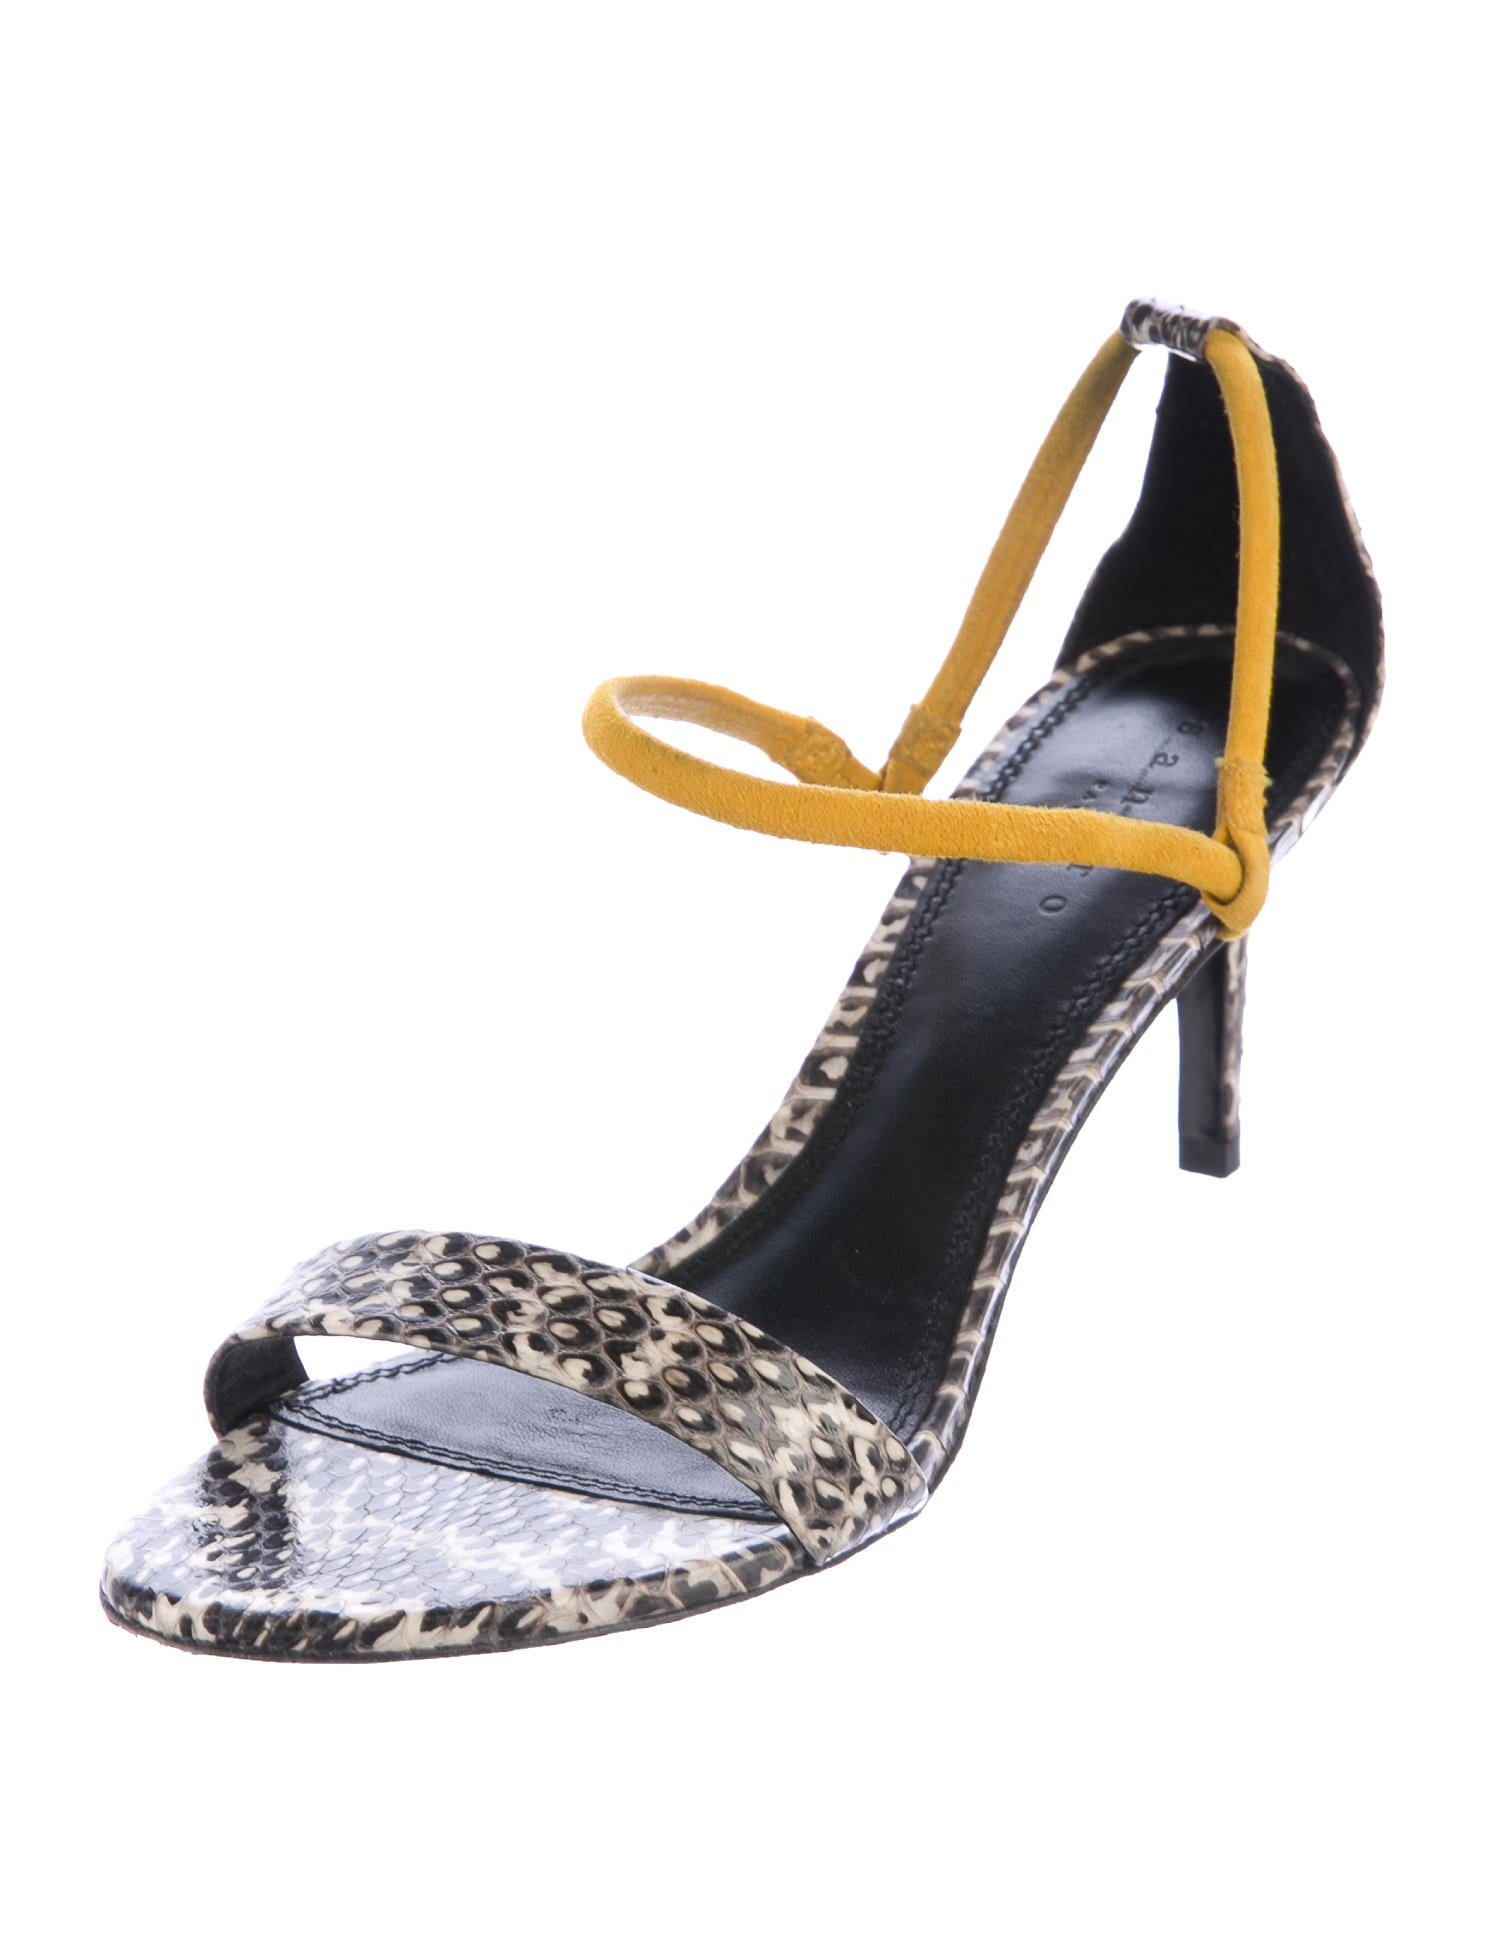 Sandro Snakeskin Ankle-Strap Sandals cheap recommend n2AyNBQ